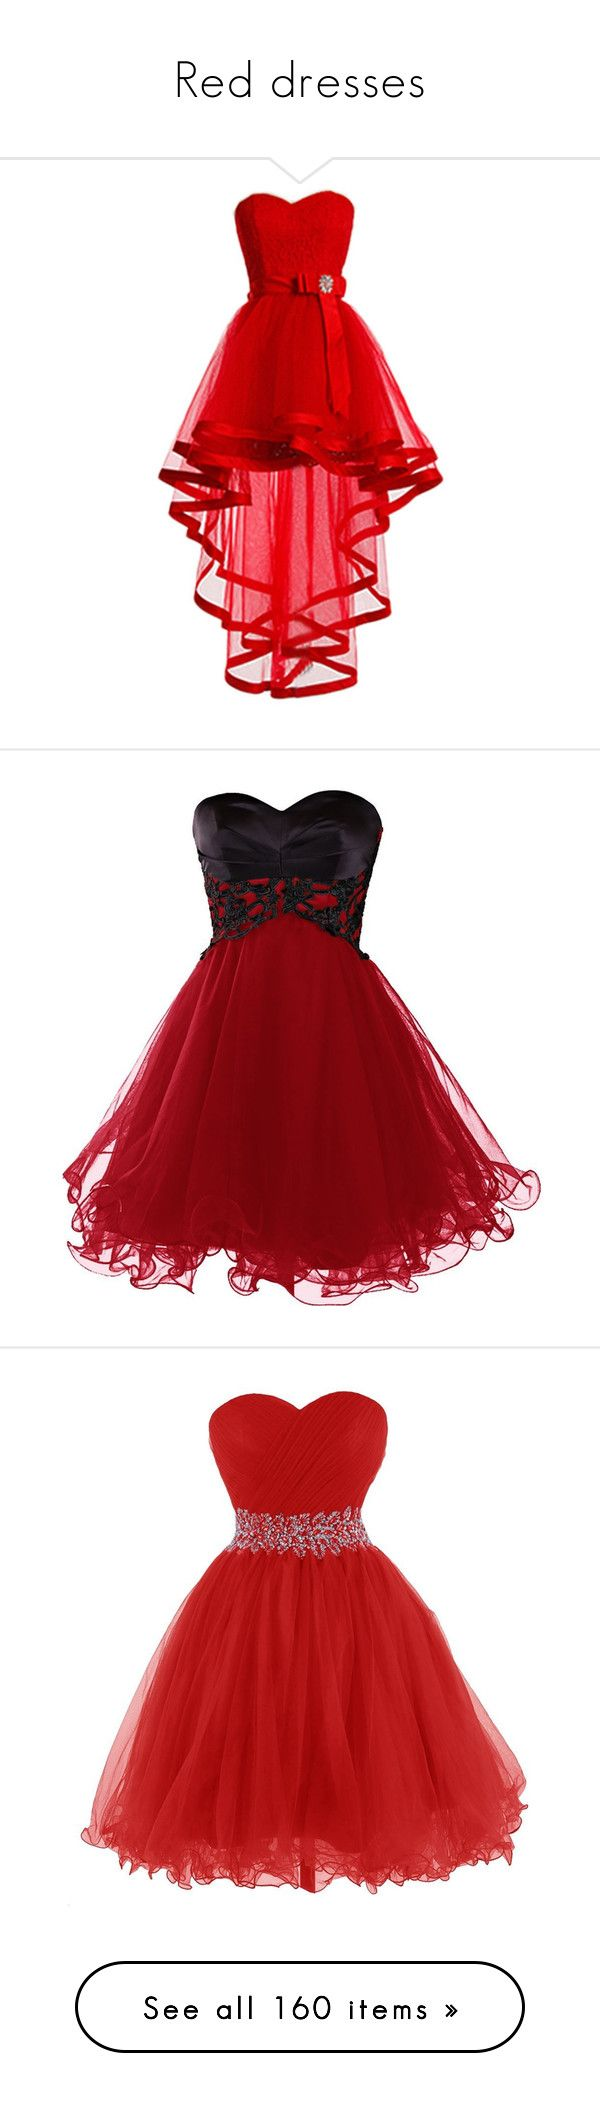 """""""Red dresses"""" by megsjessd99 ❤ liked on Polyvore featuring dresses, tulle prom dress, prom dresses, high low prom dresses, lace prom dresses, high low homecoming dresses, short dresses, red prom dresses, short homecoming dresses and red homecoming dresses"""